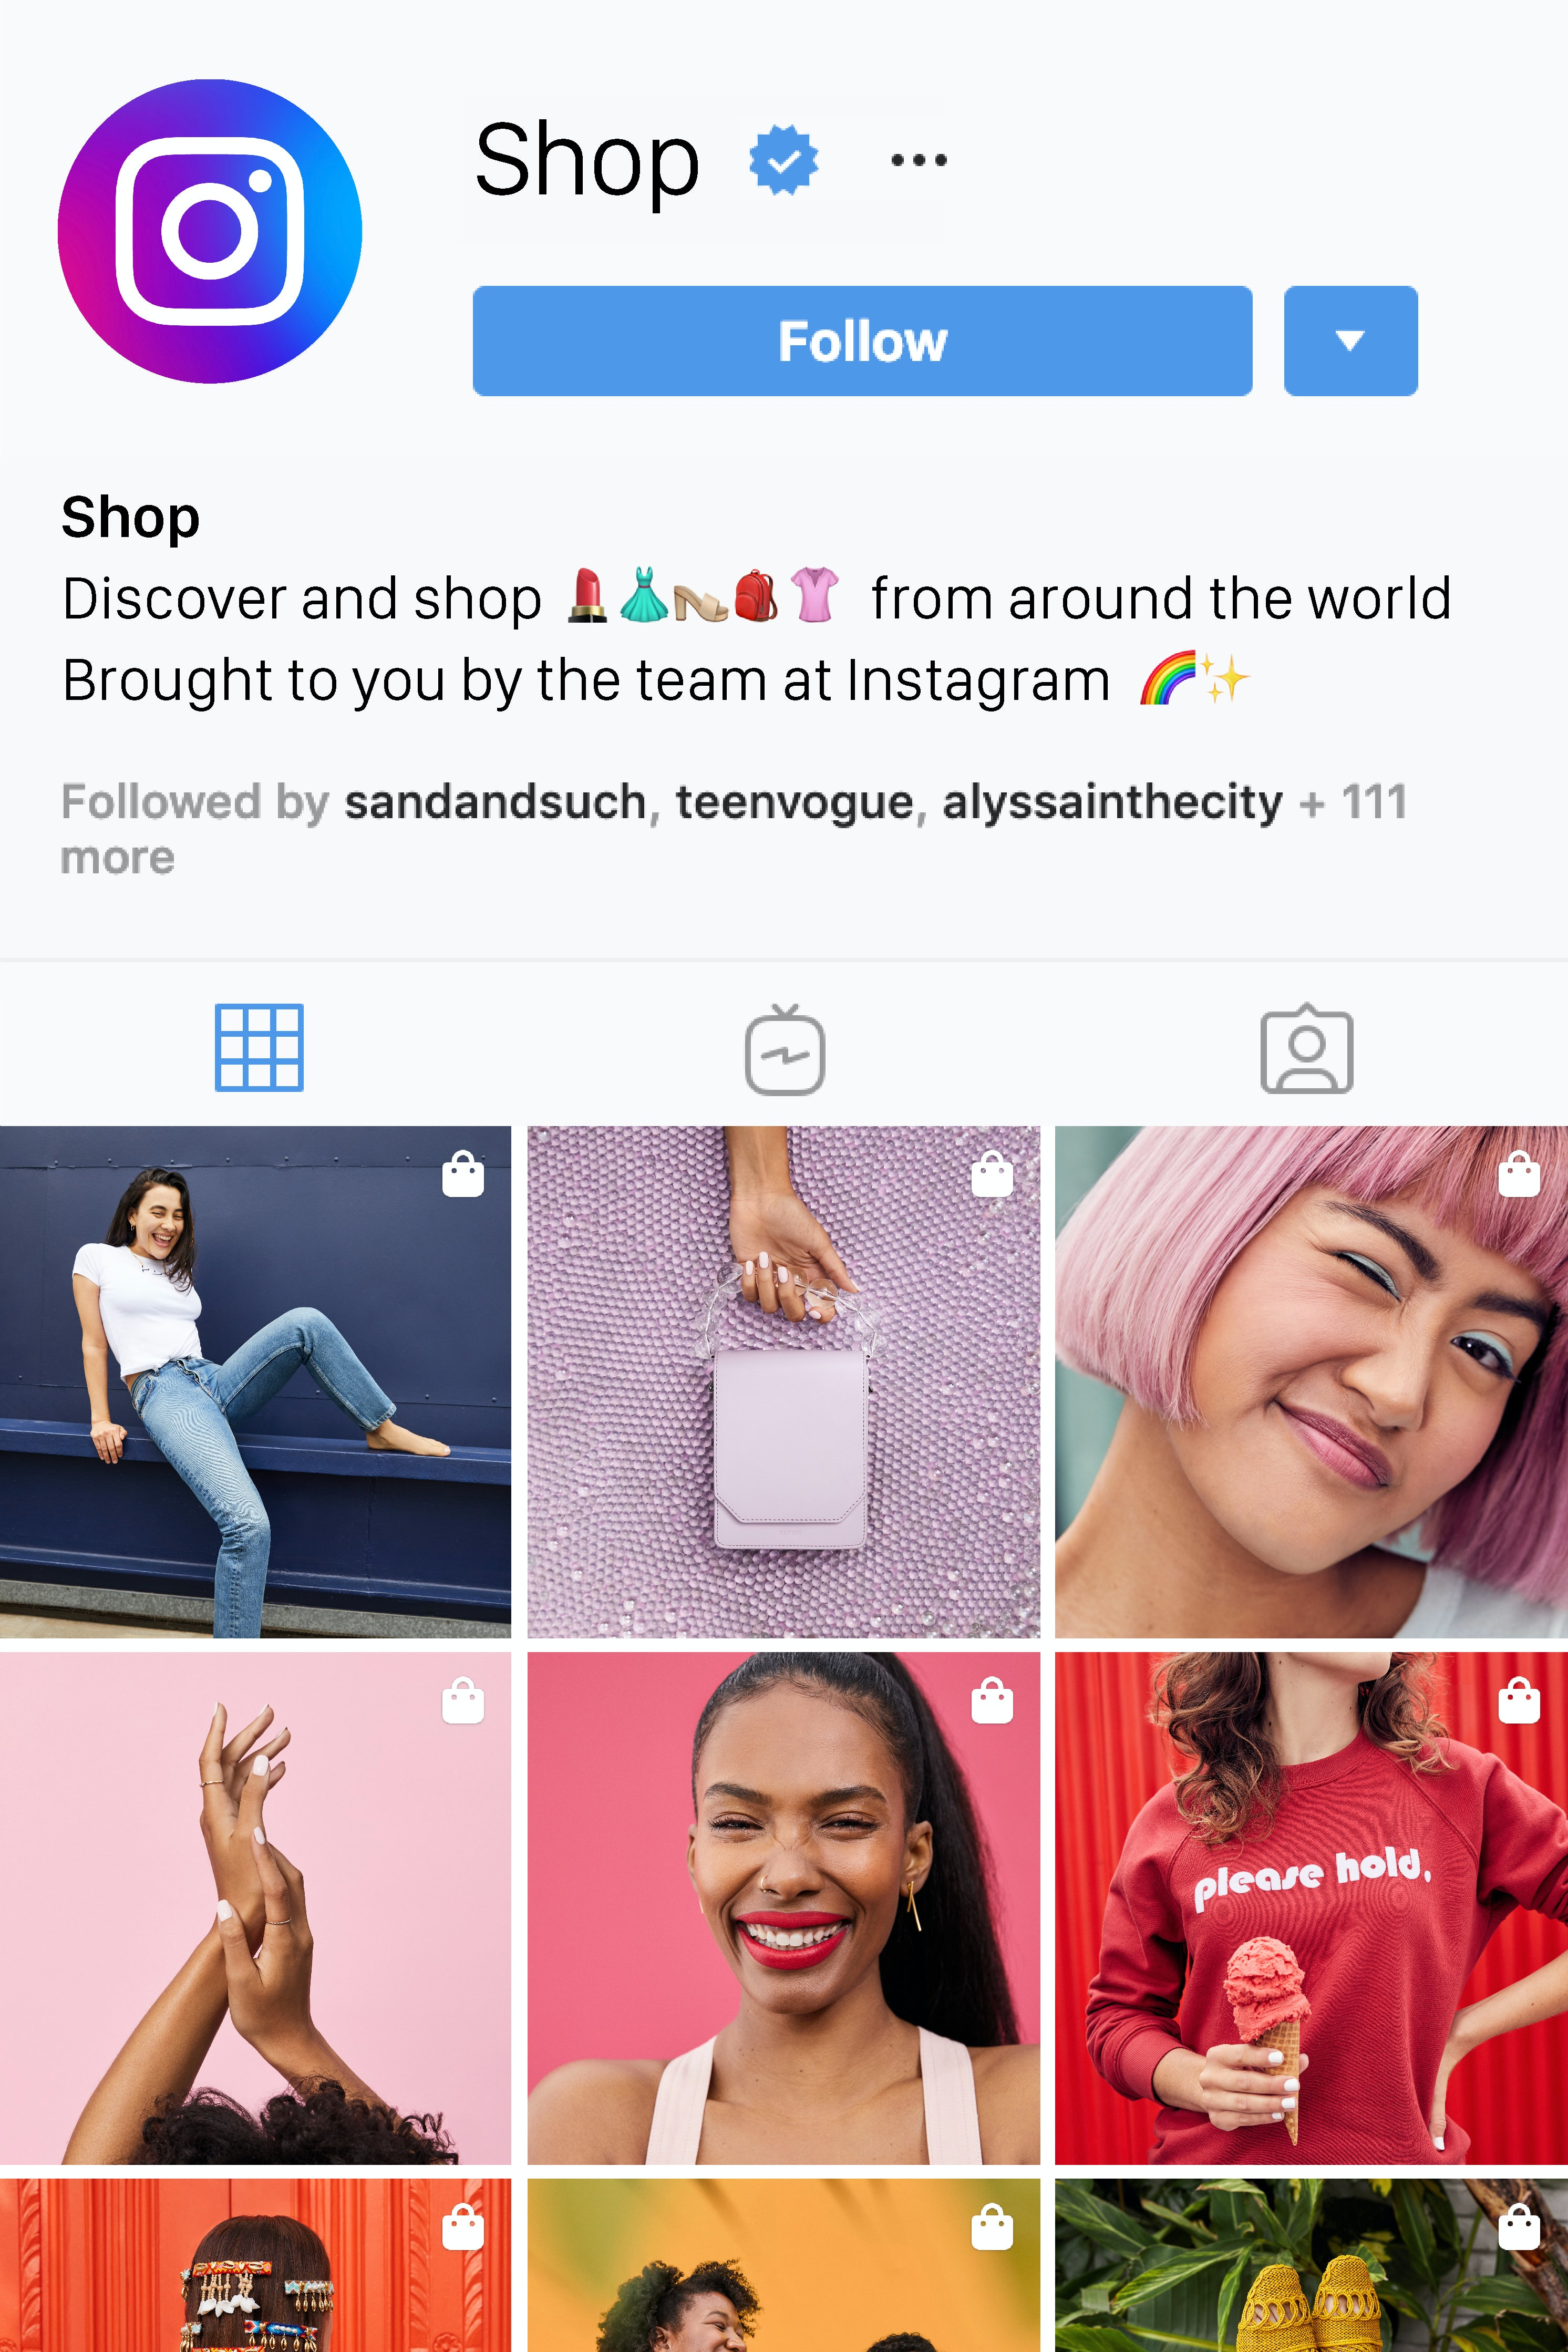 Instagram Hones in on Publishers' Turf With Shopping Recommendations